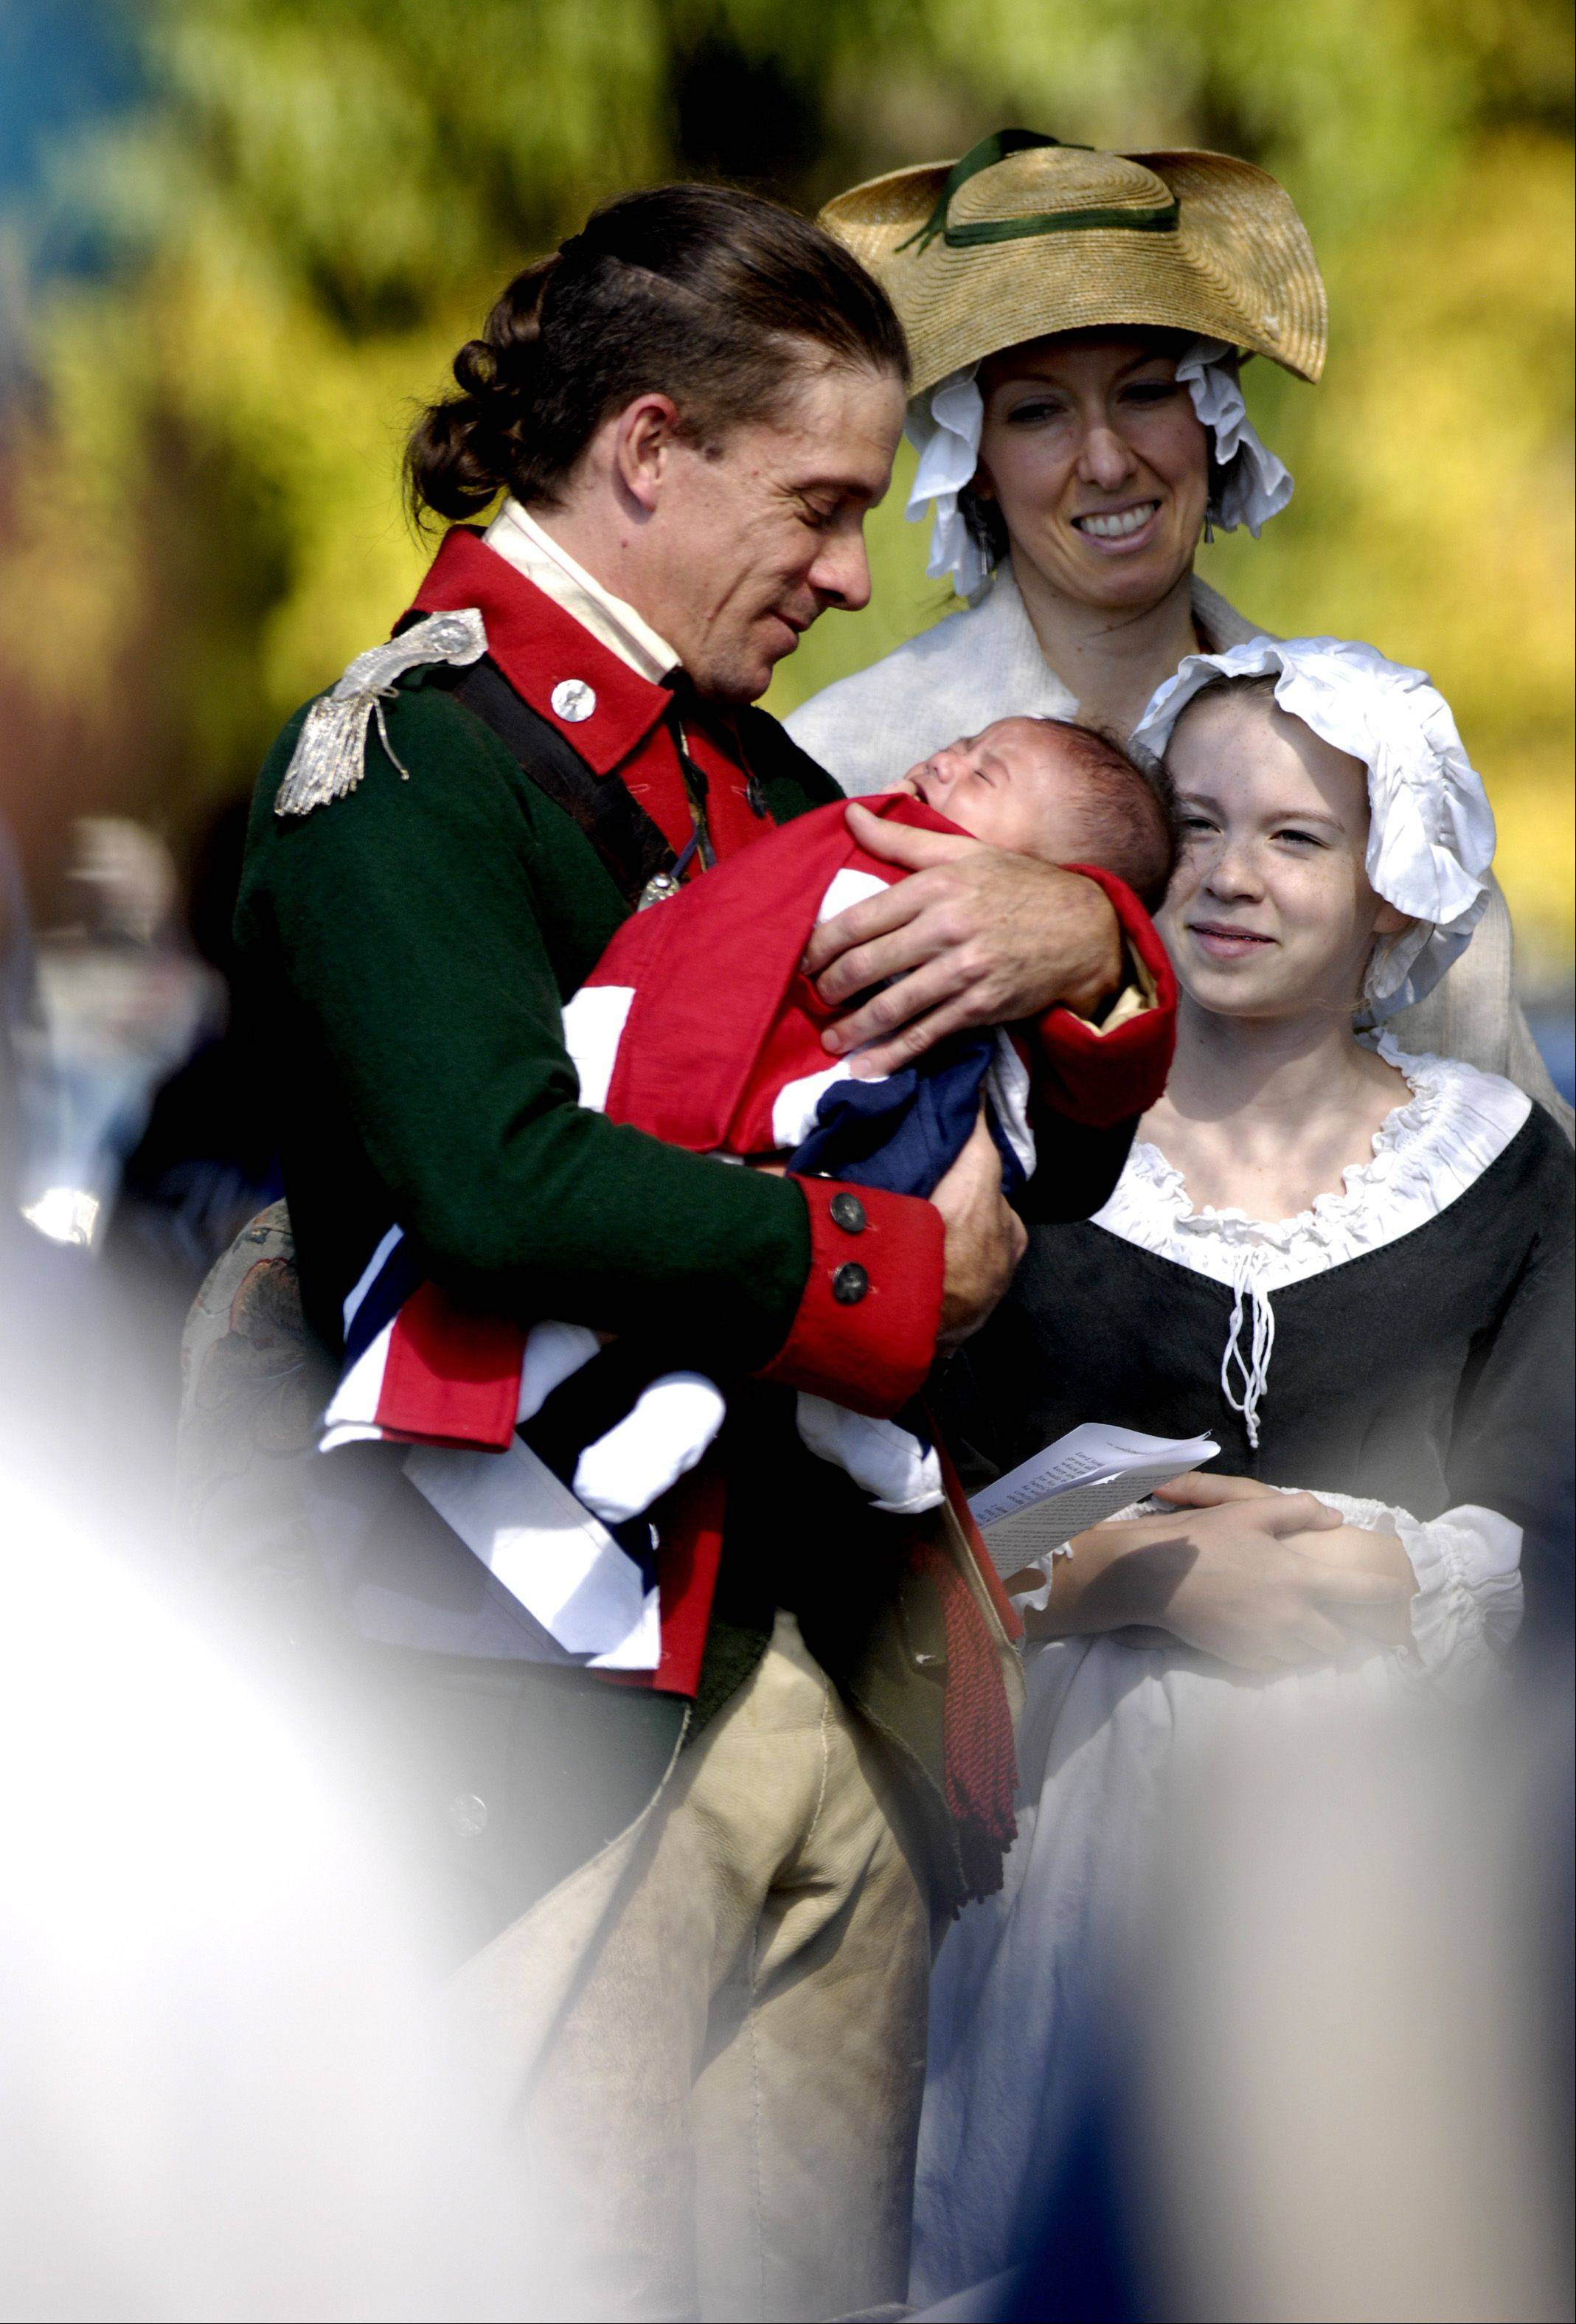 Re-enactor Tim Hess, of Streamwood, holds his newly baptized son, Ian, wrapped in a British flag, during a real baptism ceremony before a Revolutionary War battle re-enactment Sunday at Cantigny Park in Wheaton.